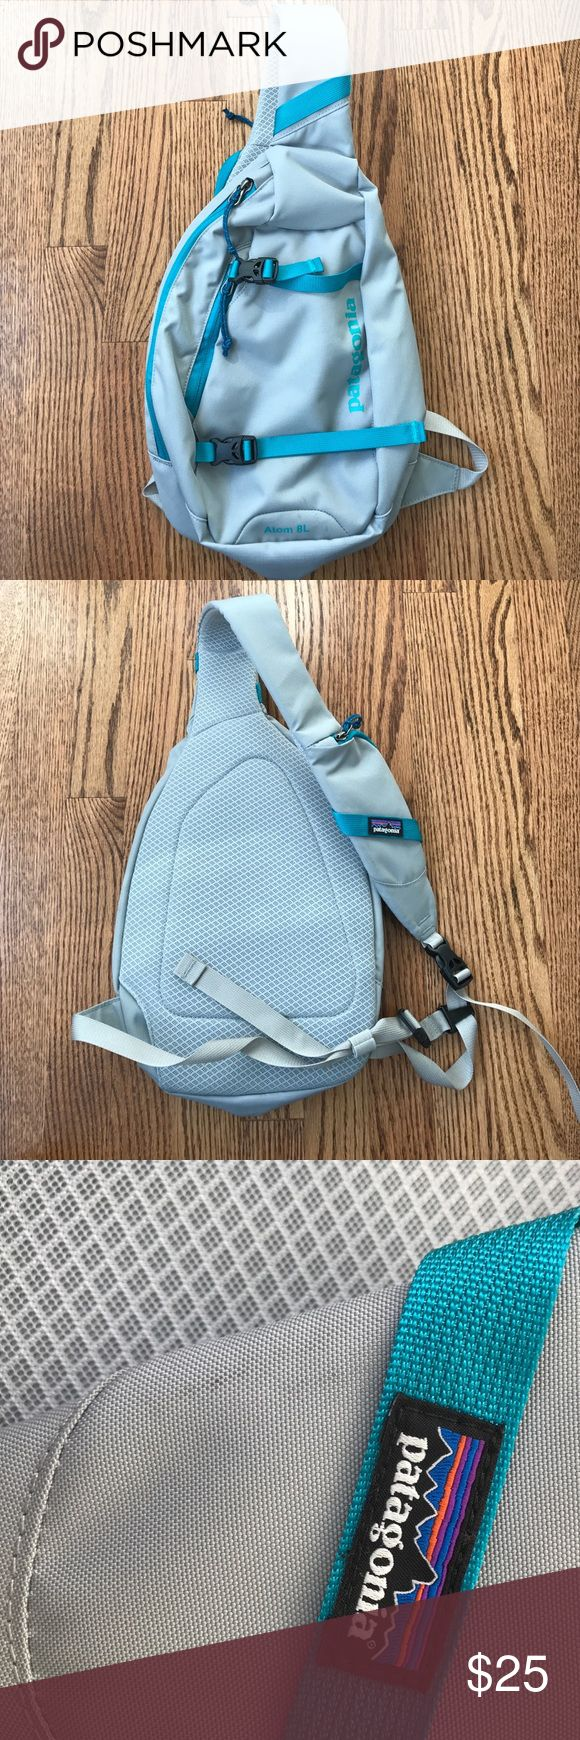 Patagonia cross body bag- grey and teal Gently used Patagonia cross body backpack in grey/real with adjustable straps, cell phone pocket, and interior compartments. Used for 1 trip, only a few light marks (see last 2 photos) which should come out relatively easily. Patagonia Bags Backpacks